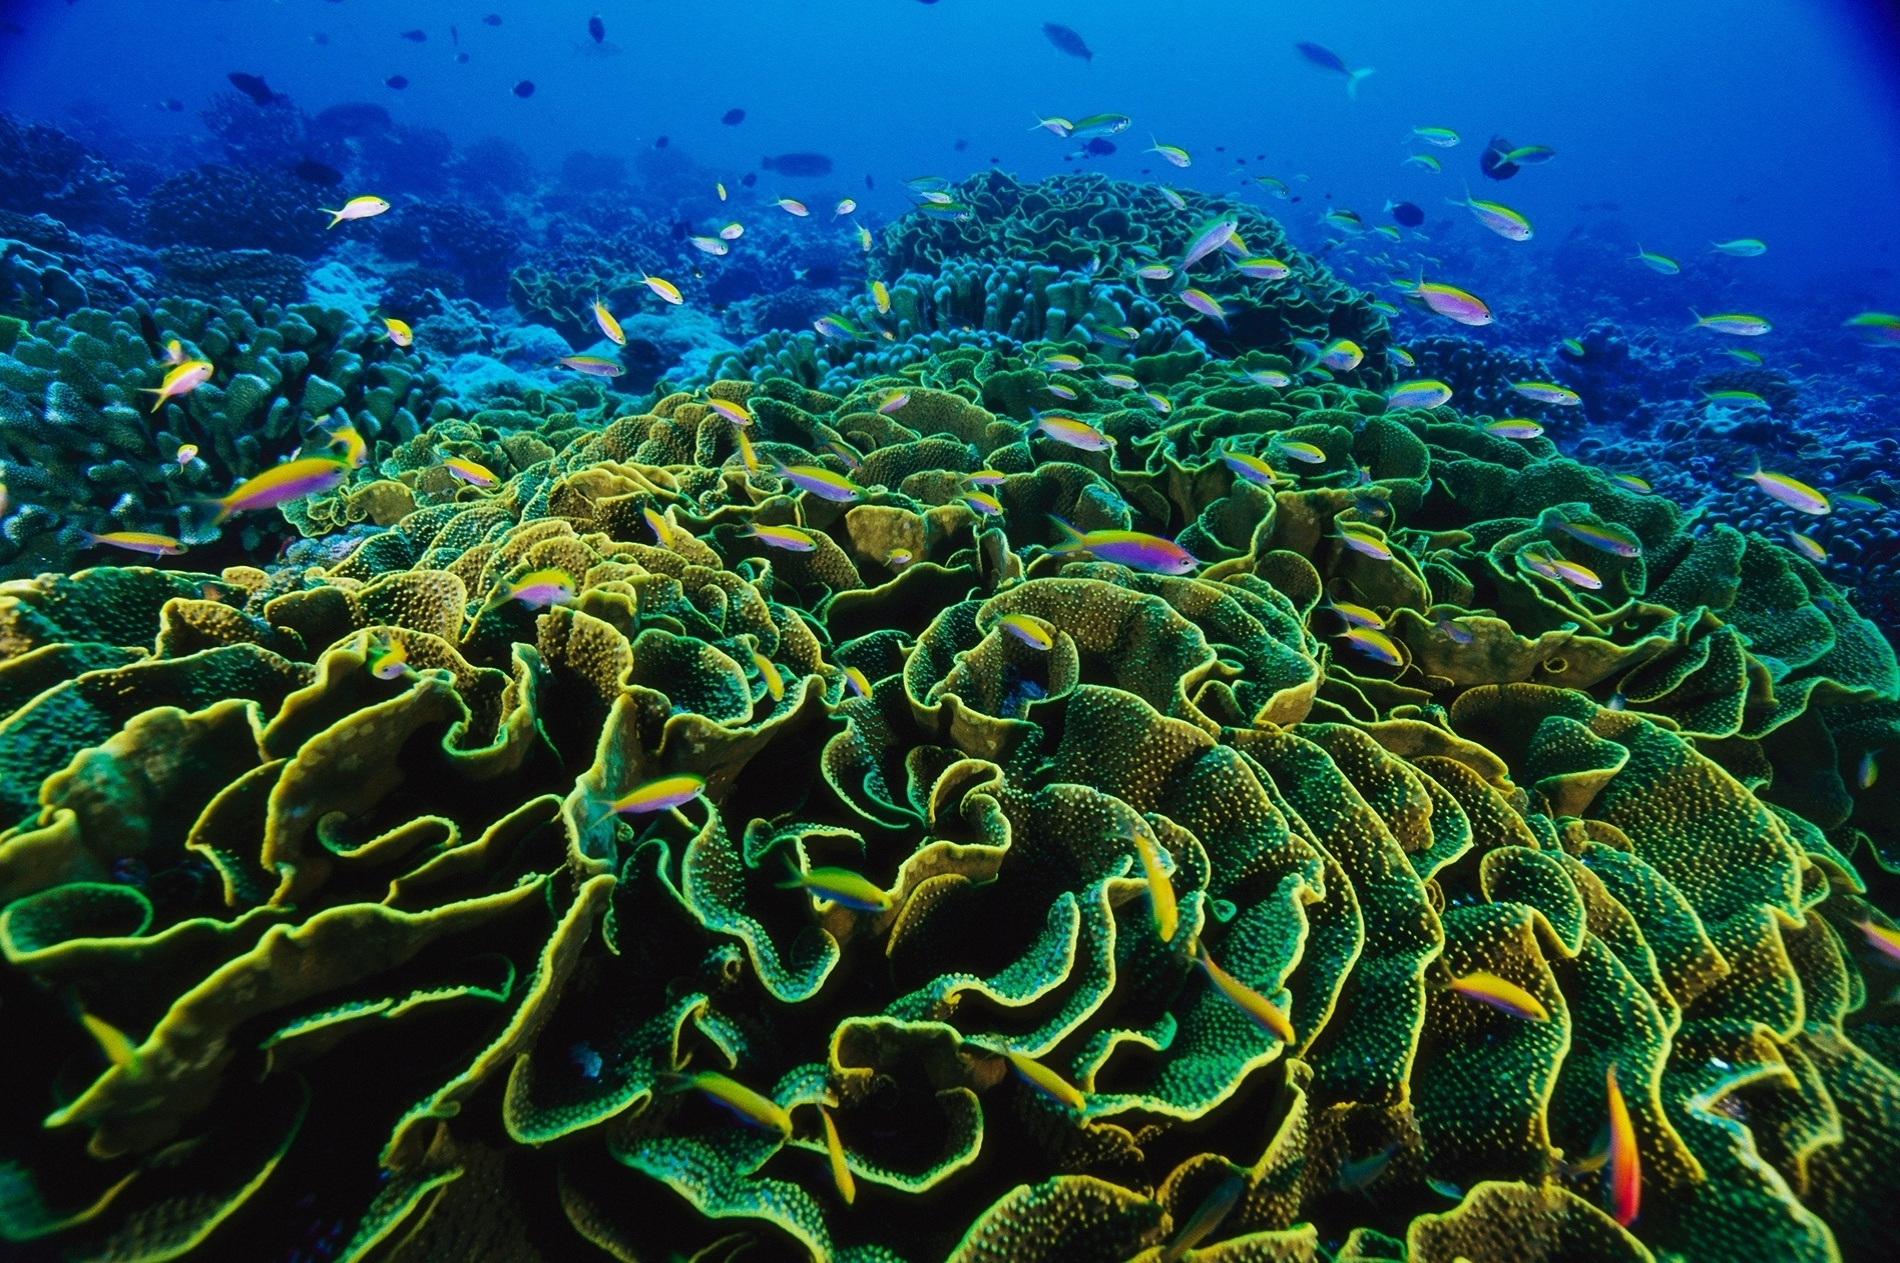 Tropical ocean animals and plants - photo#18